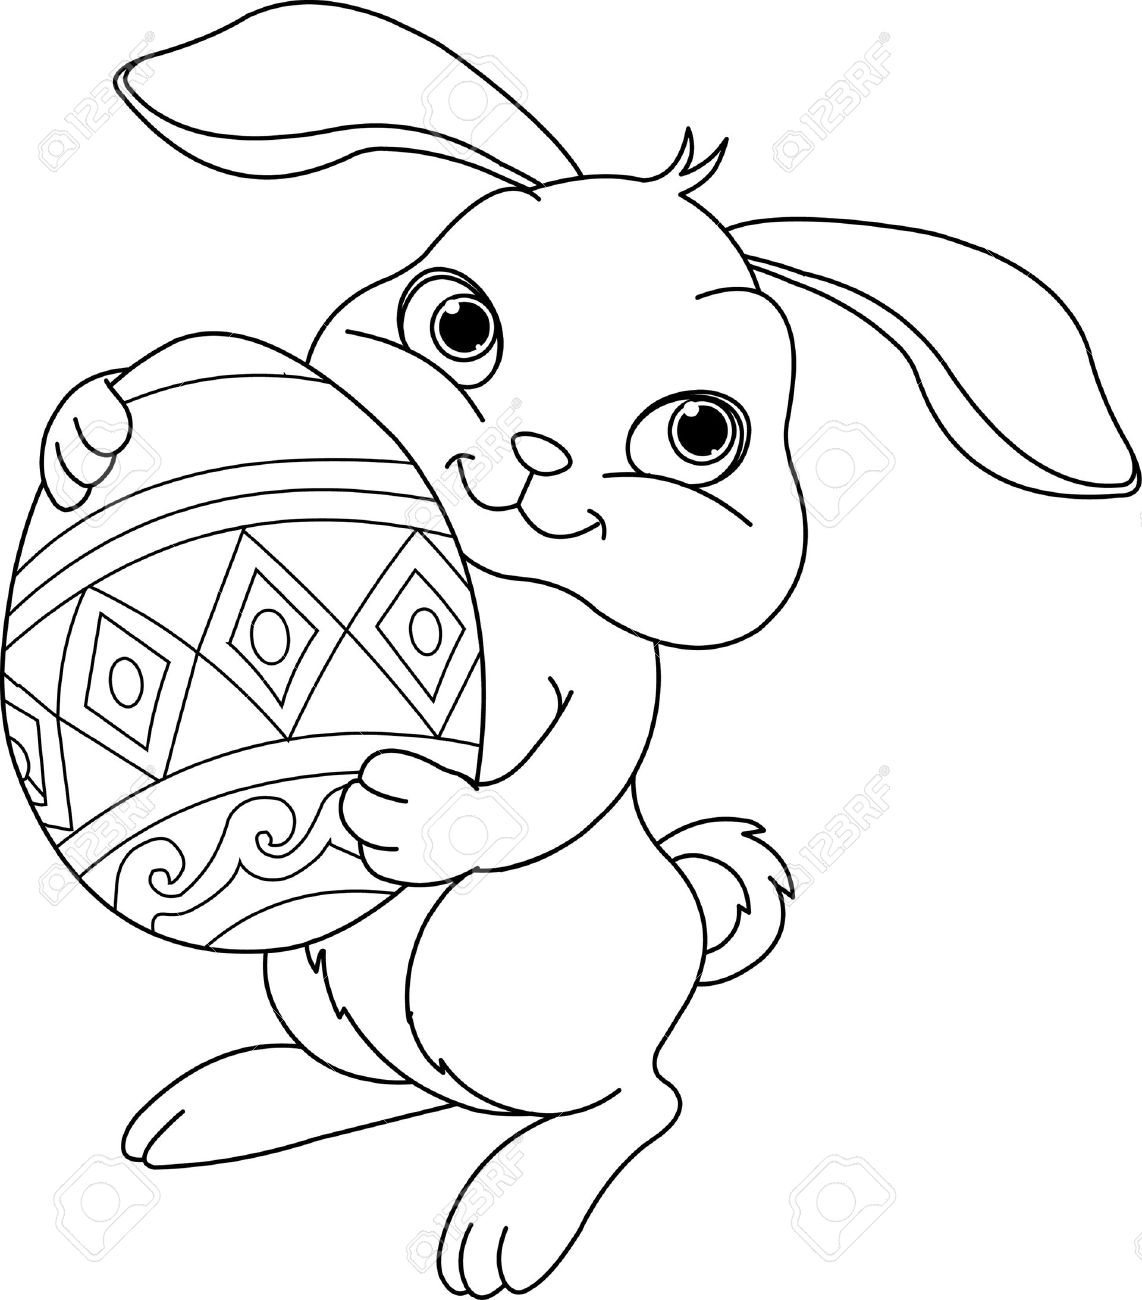 White clipart easter bunny Search easter bunny art Google